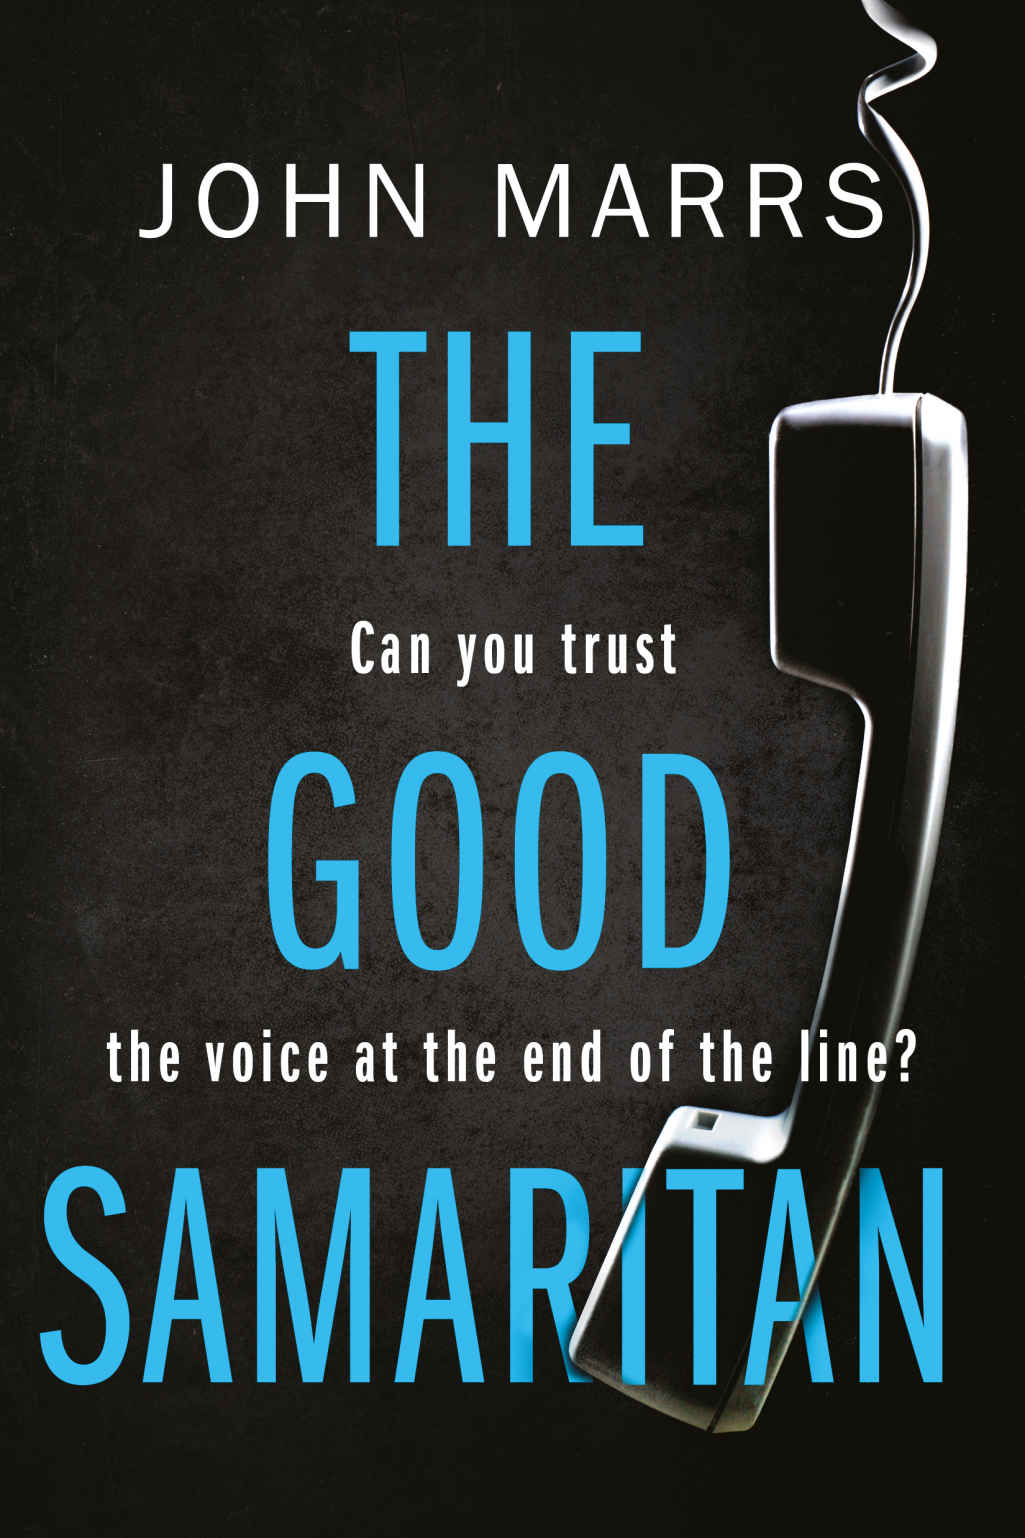 The Good Samaritan - John Marrs [kindle] [mobi]